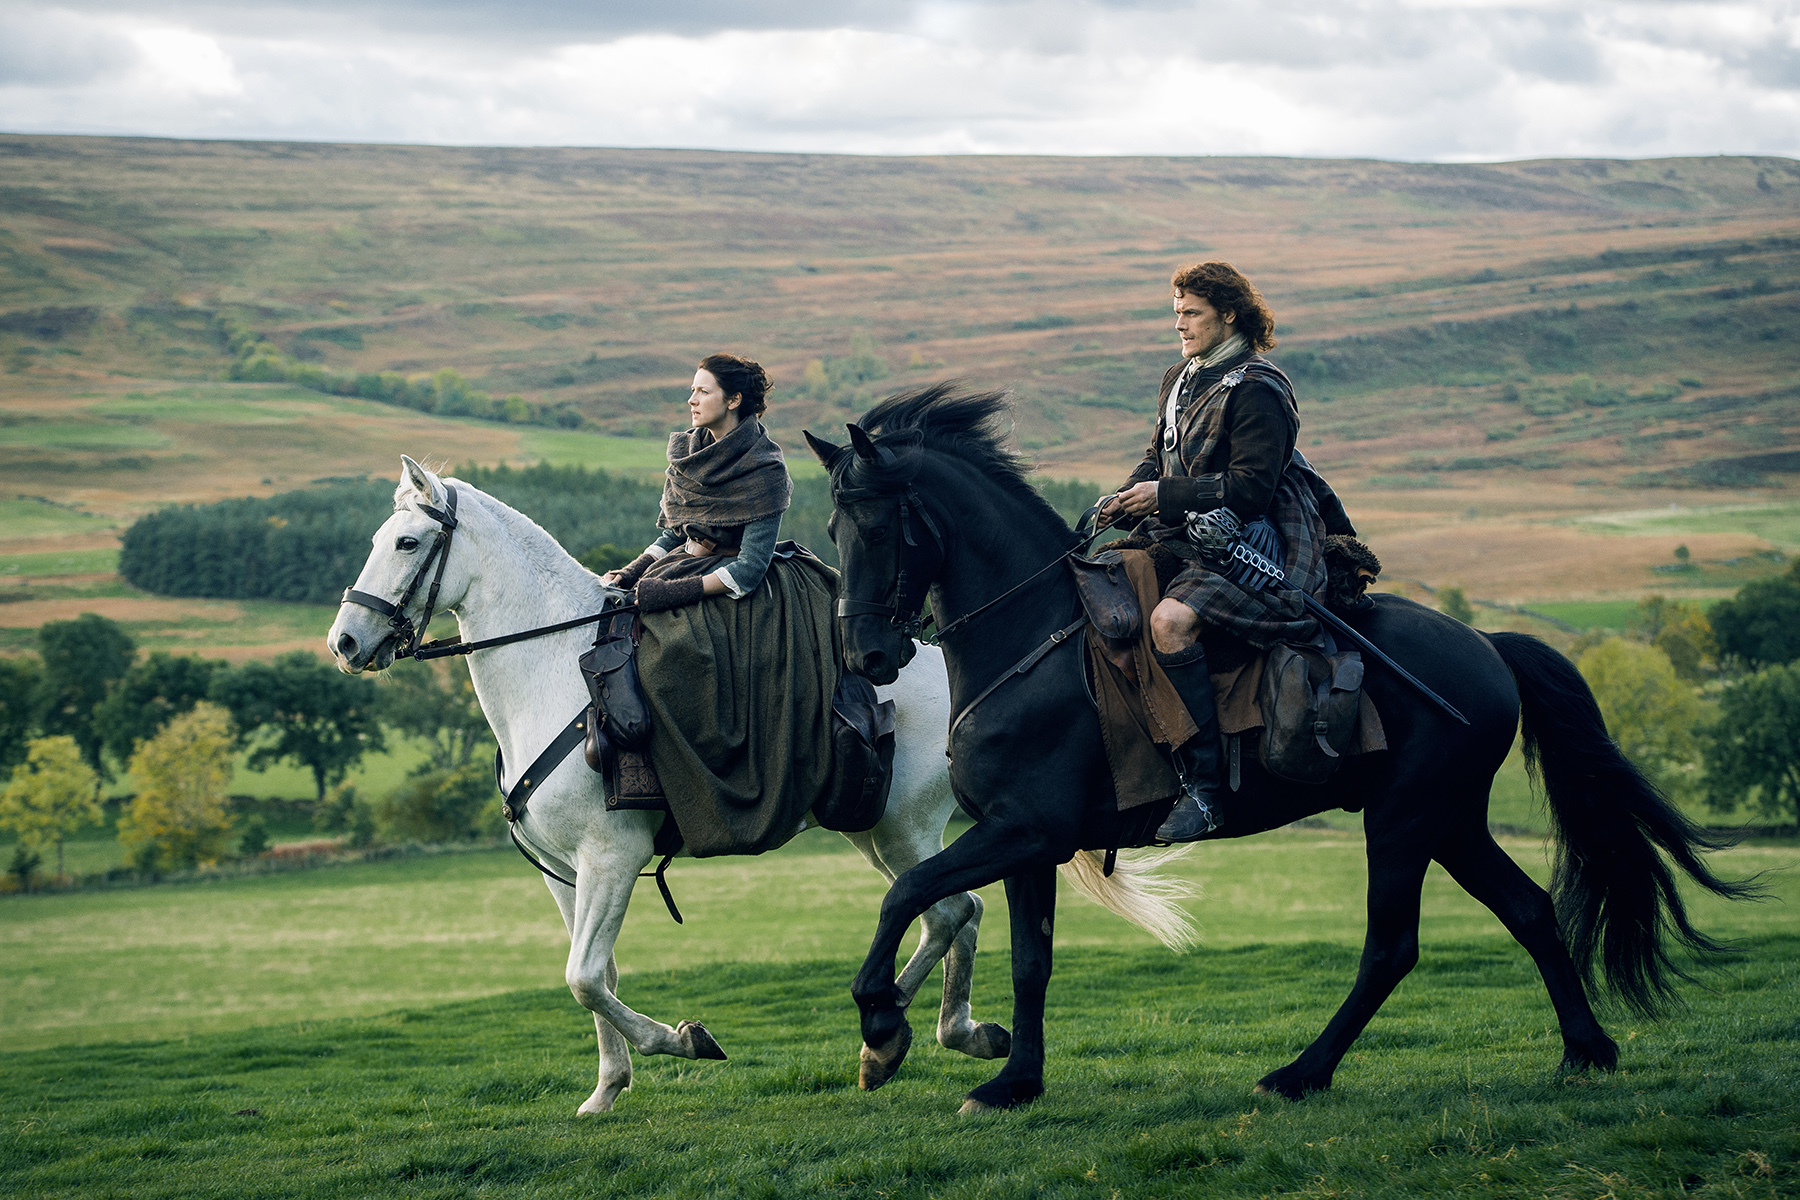 Caitriona Balfe and Sam Heughan (Claire Randall Fraser and Jamie Fraser)